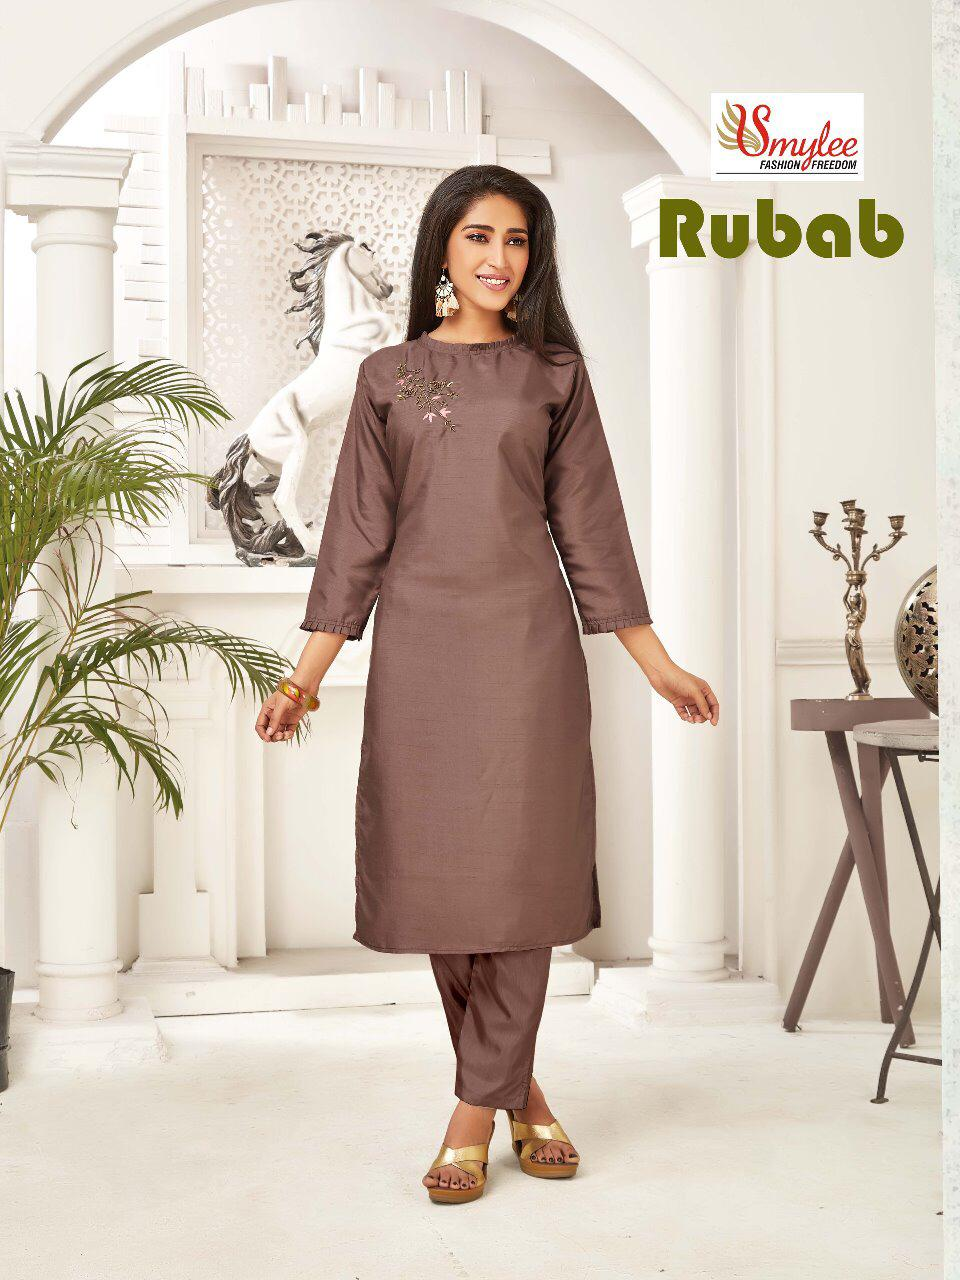 Smylee Rubab collection 7